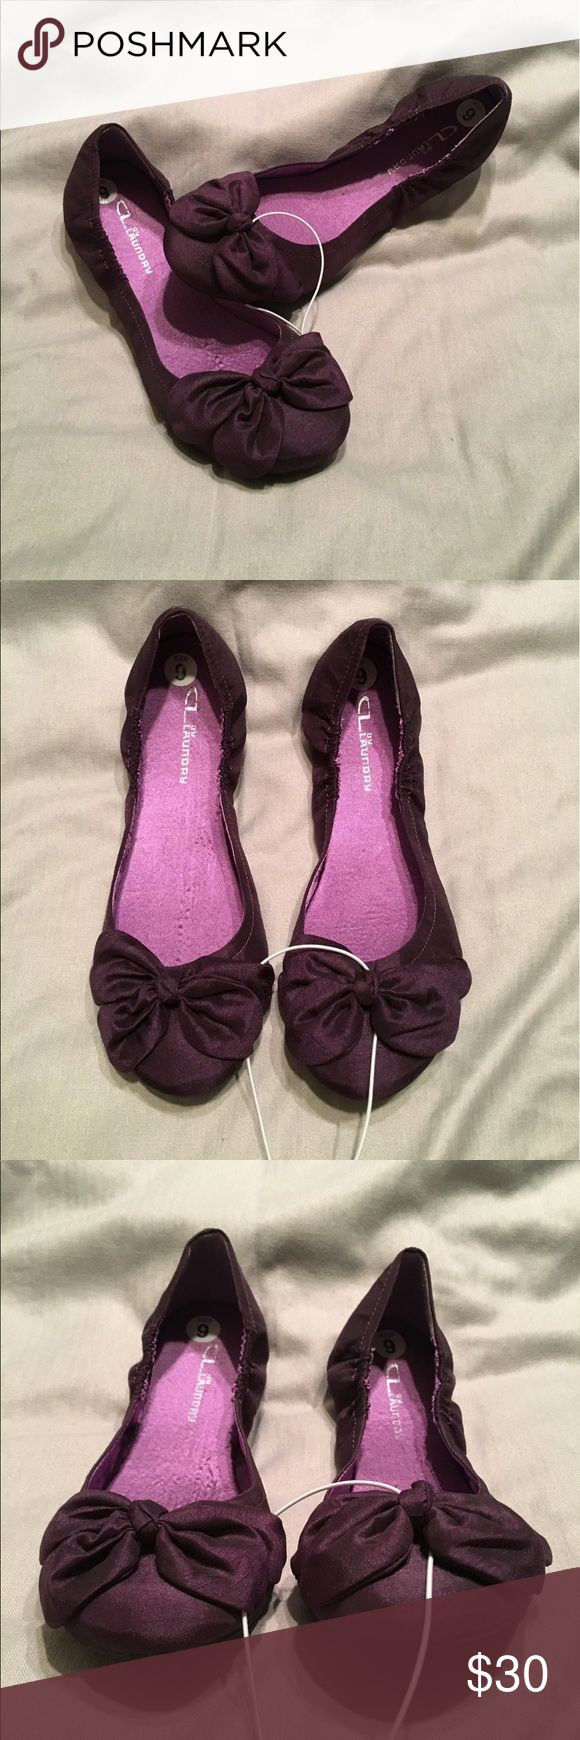 NWOT Chinese Laundry purple ballet flats New CL by Laundry purple satin ballet flats with bows. No tags or box. Size 9. Chinese Laundry Shoes Flats & Loafers